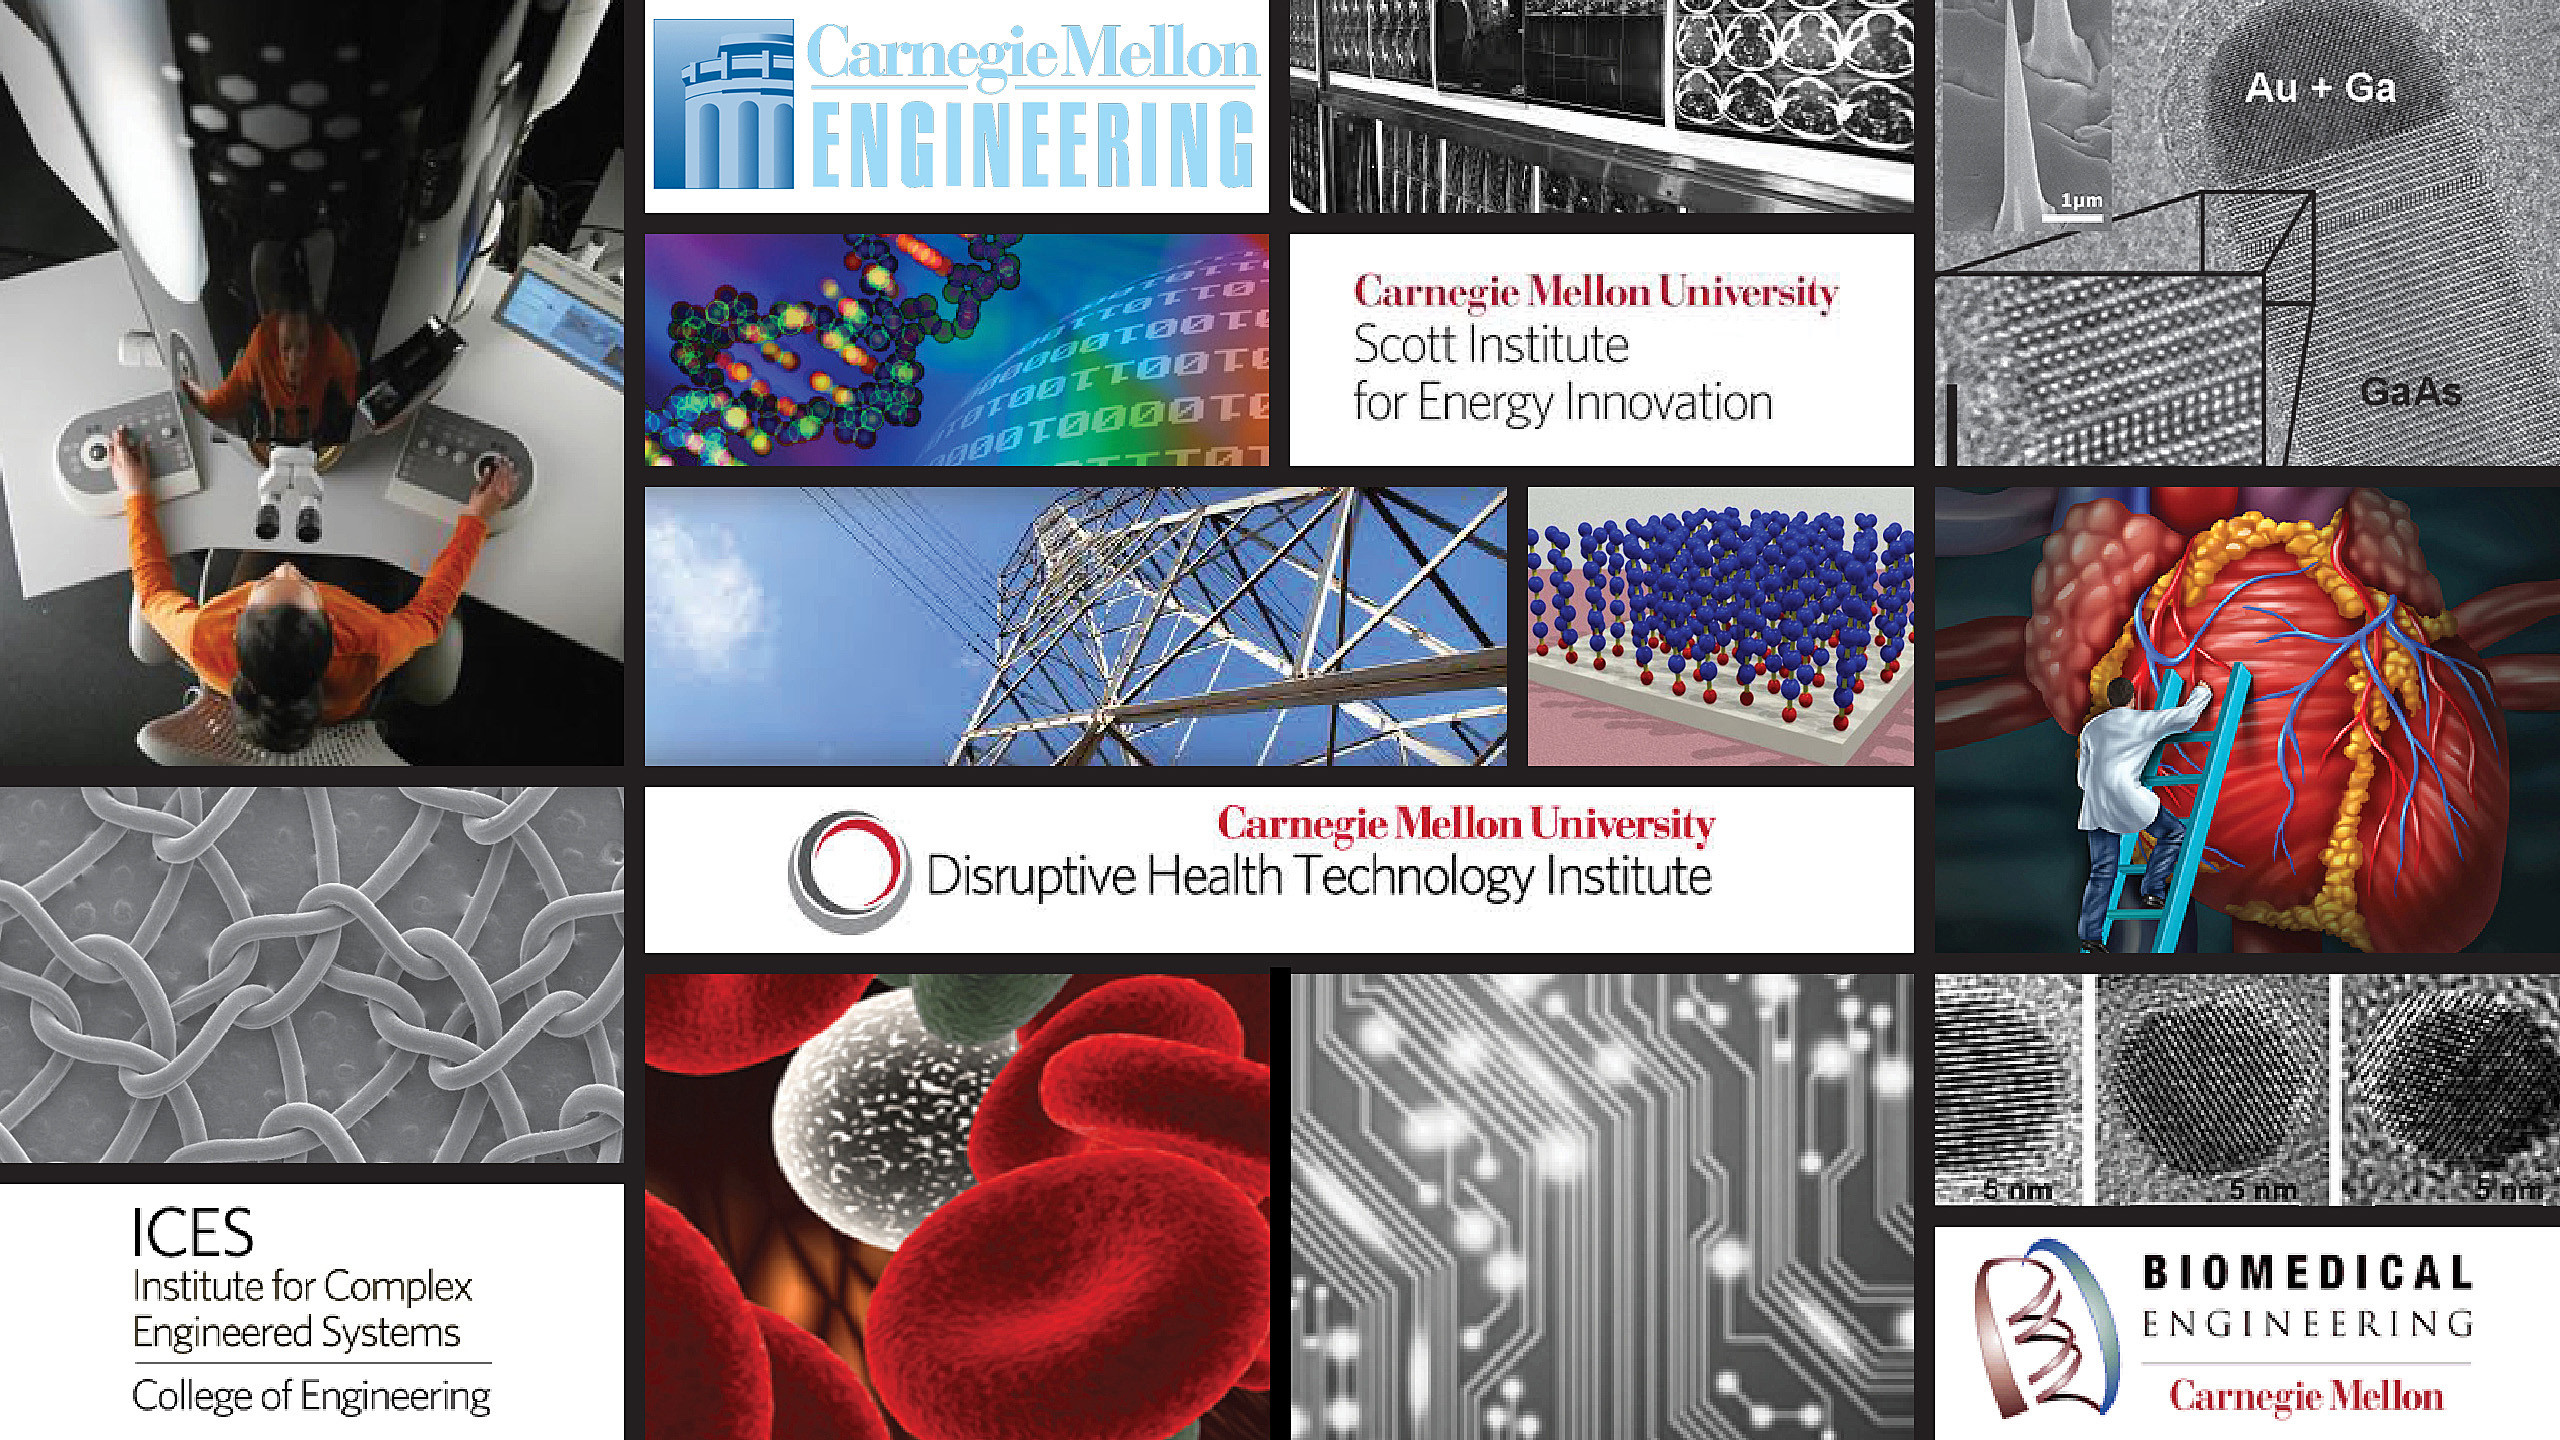 Competition winning design – Nanotechnology Biotechnology and Energy Technologies Building for the CMU College of Engineering / image 16